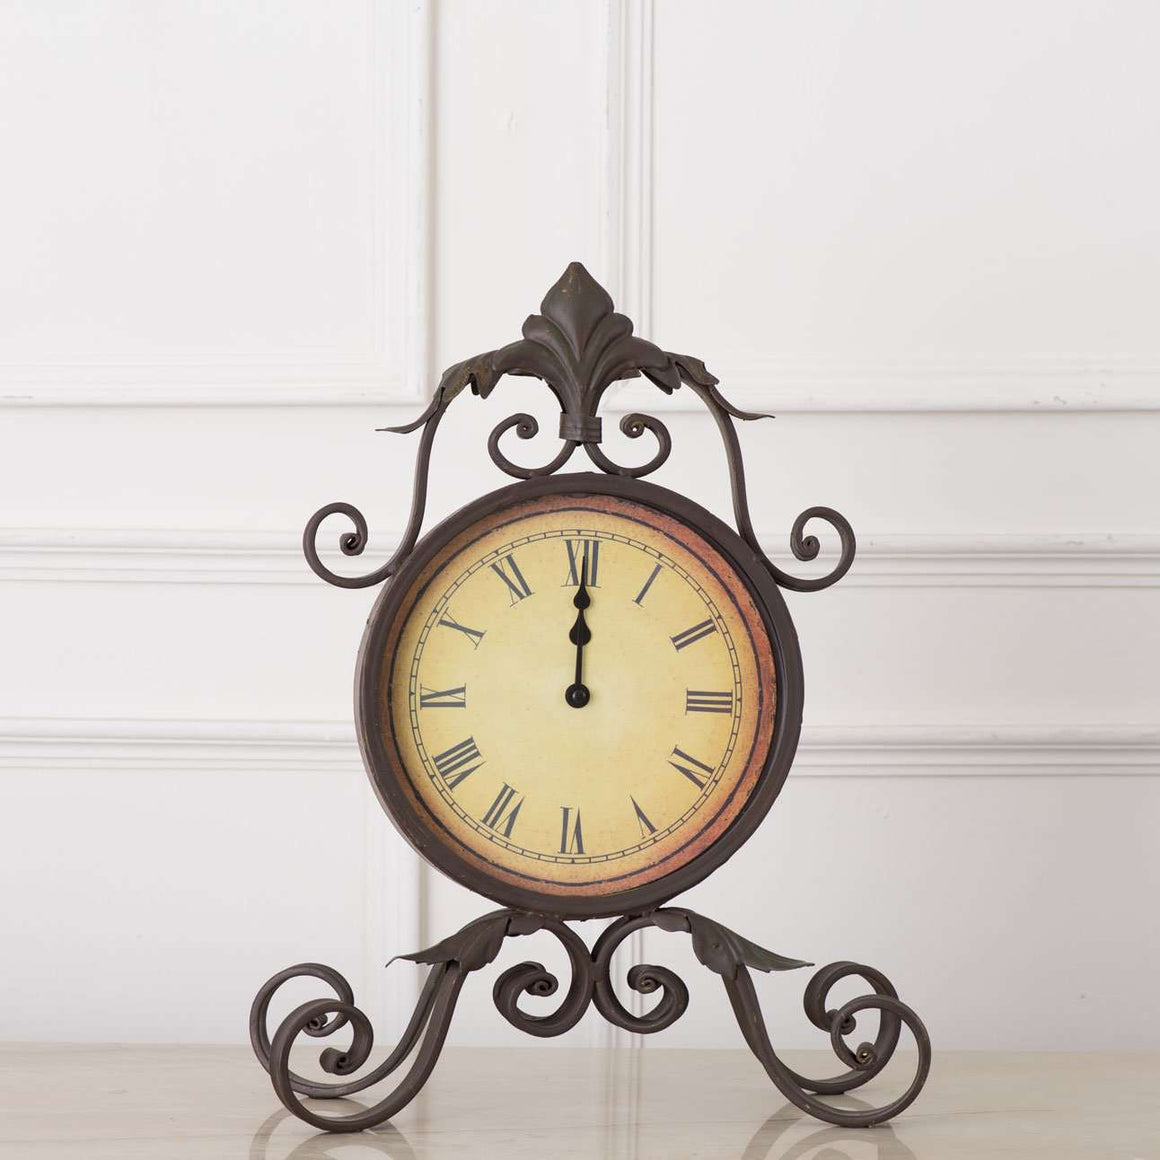 'Versailles' Vintage Mantle/Desk Clock